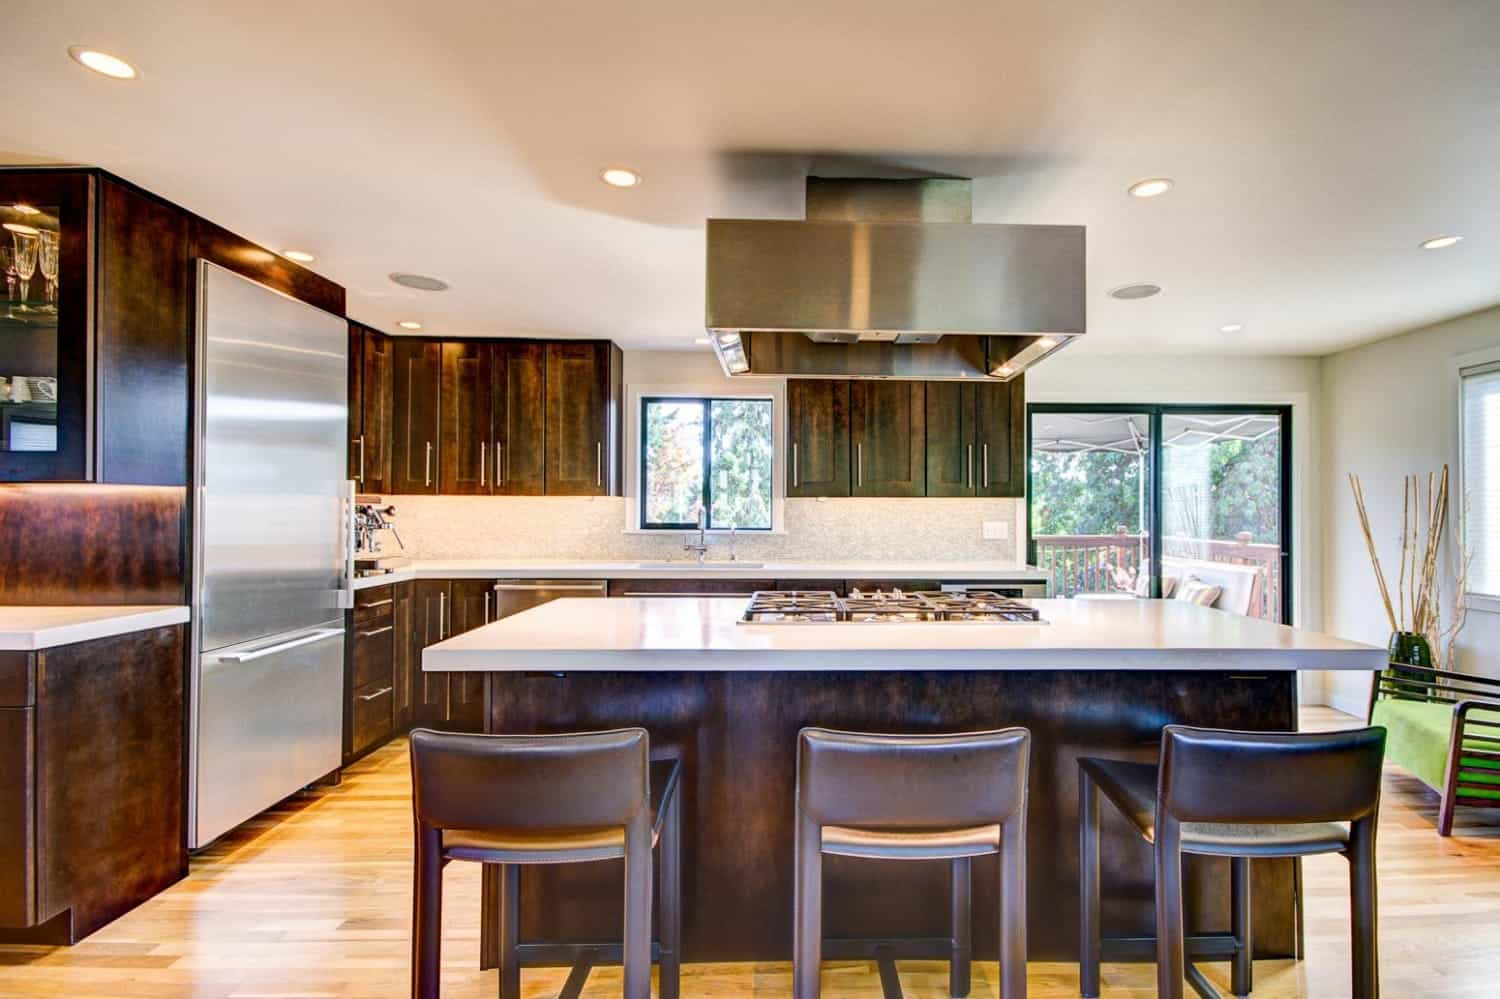 Tranquil Asian Inspired Kitchen Boasts Dark Wood Accents (View 6 of 32)